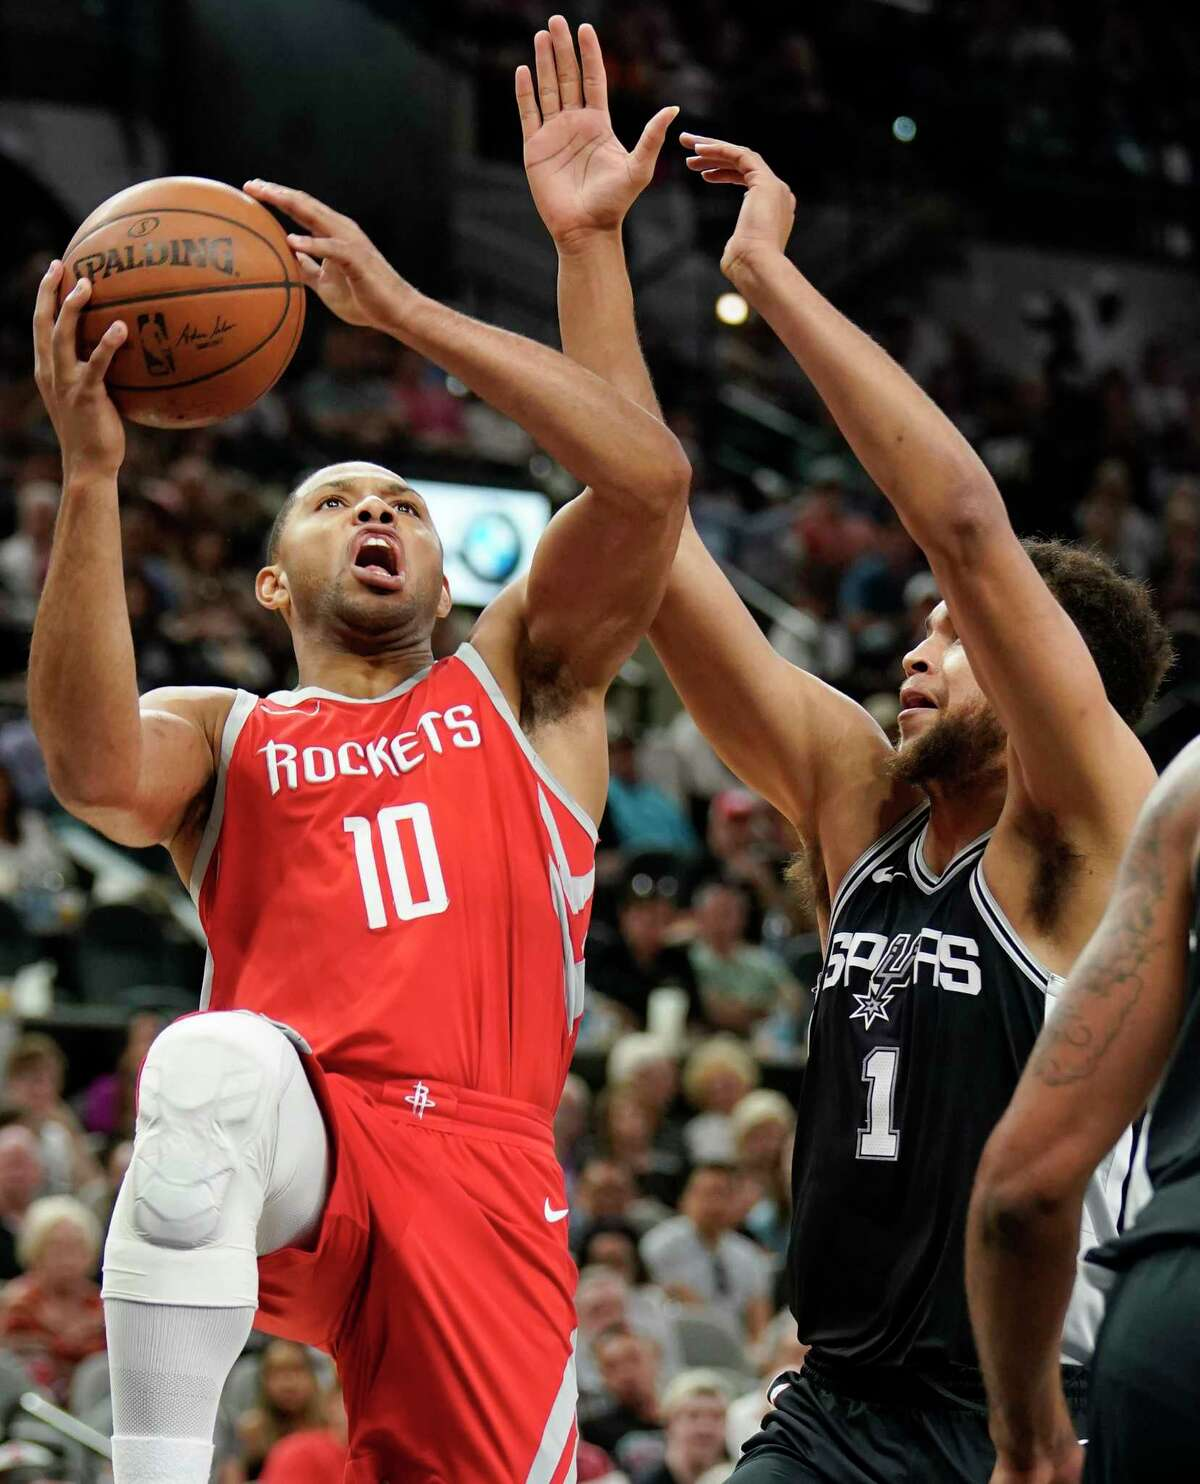 Houston Rockets' Eric Gordon (10) shoots against San Antonio Spurs' Kyle Anderson during the first half of an NBA basketball game, Sunday, April 1, 2018, in San Antonio. (AP Photo/Darren Abate)